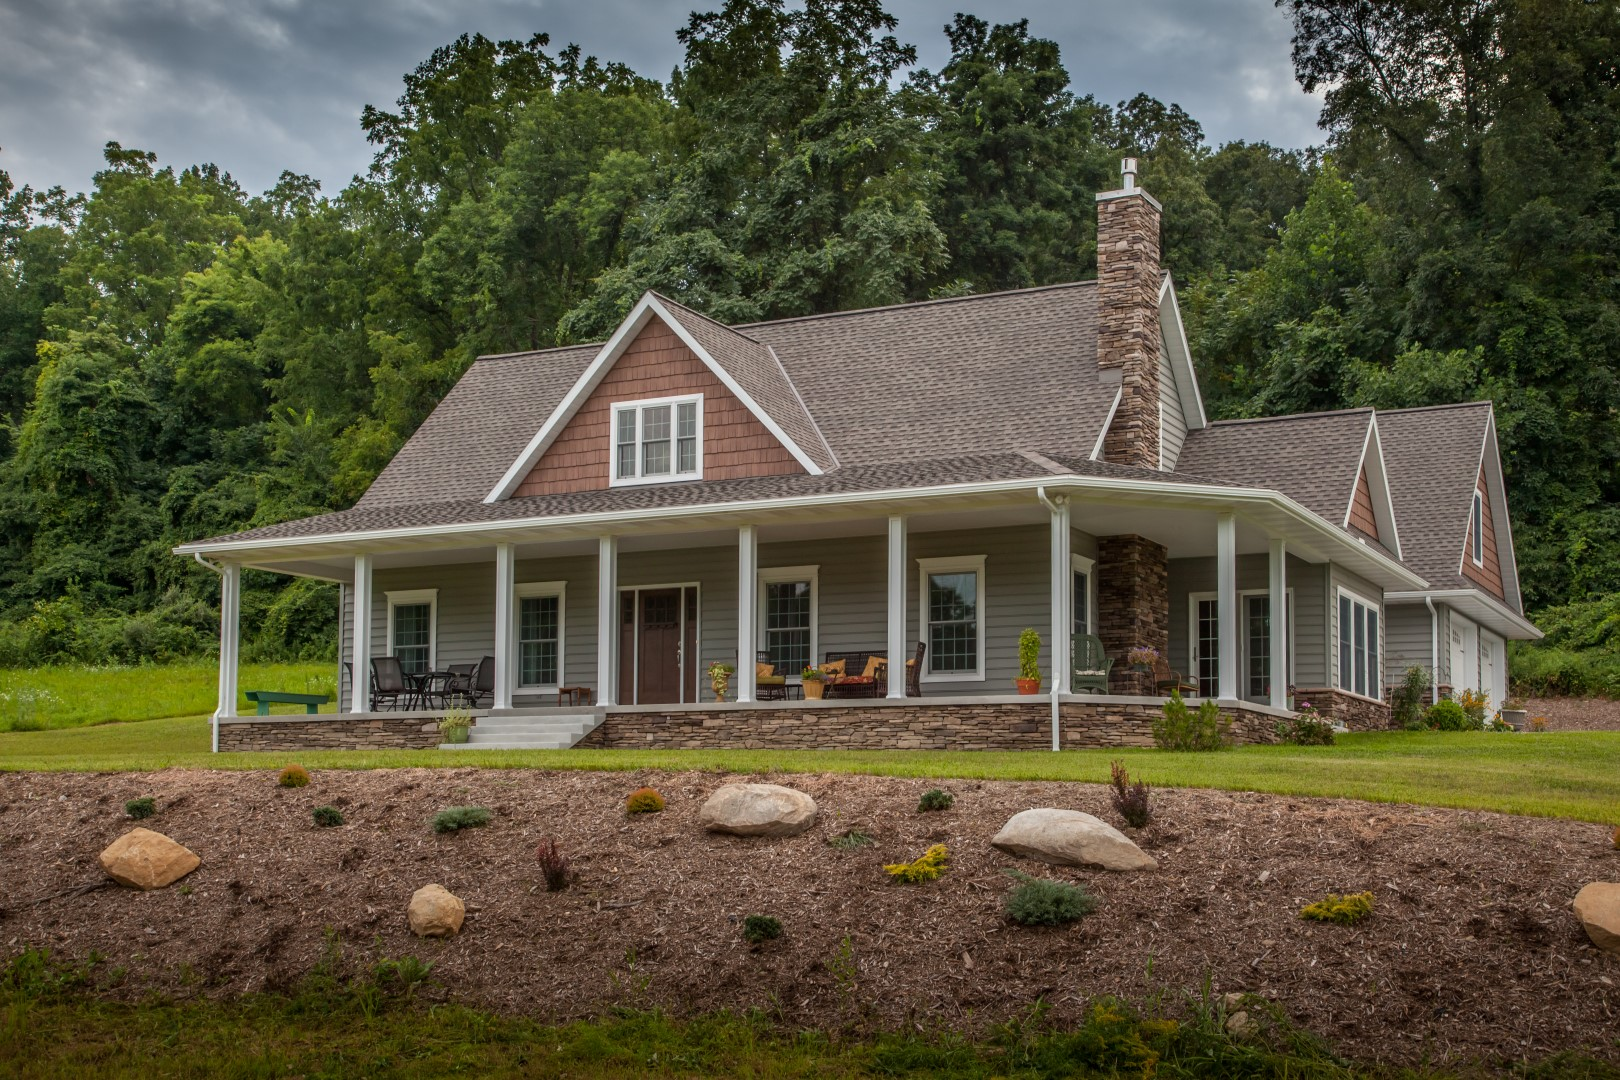 Dauphin county custom home builder earl weaver contractors for Home builders in central pa